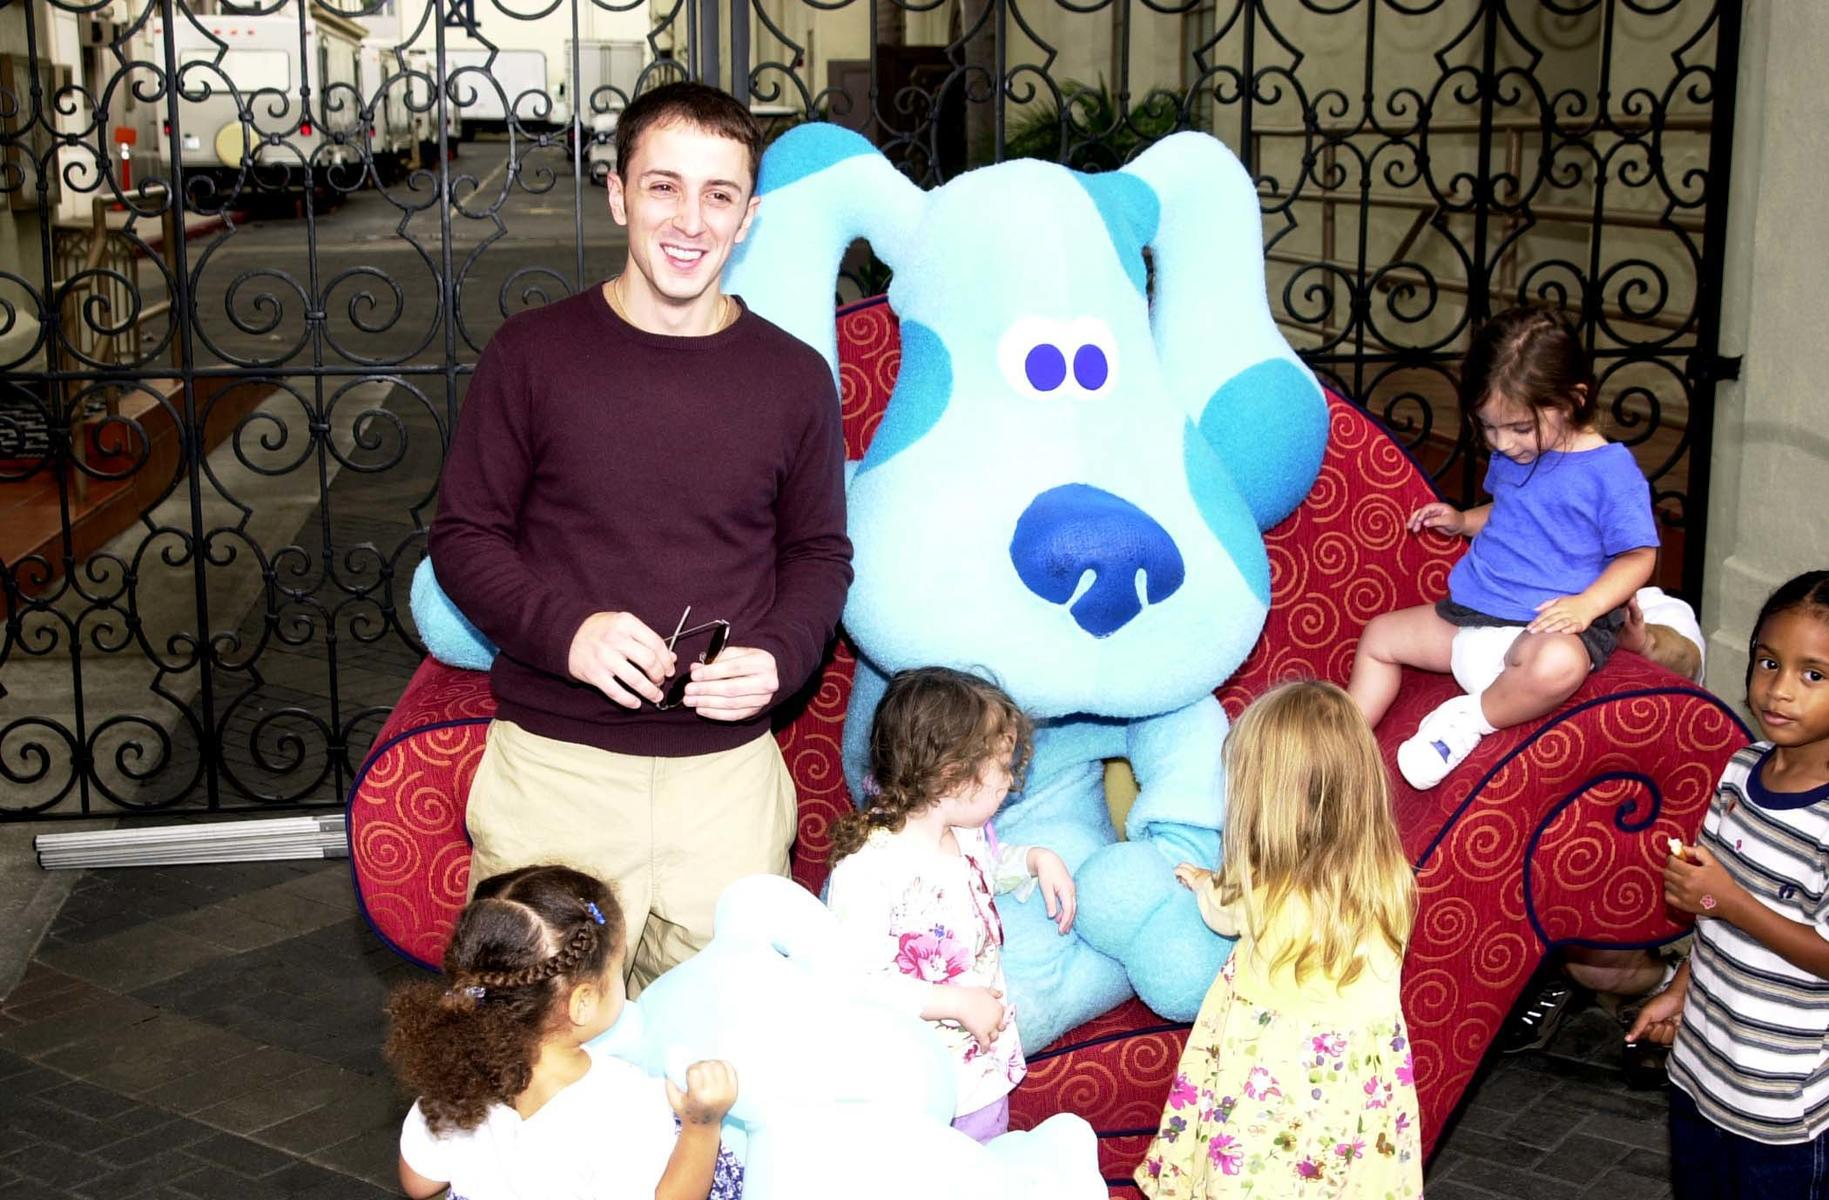 Blues Clues Steve Burns